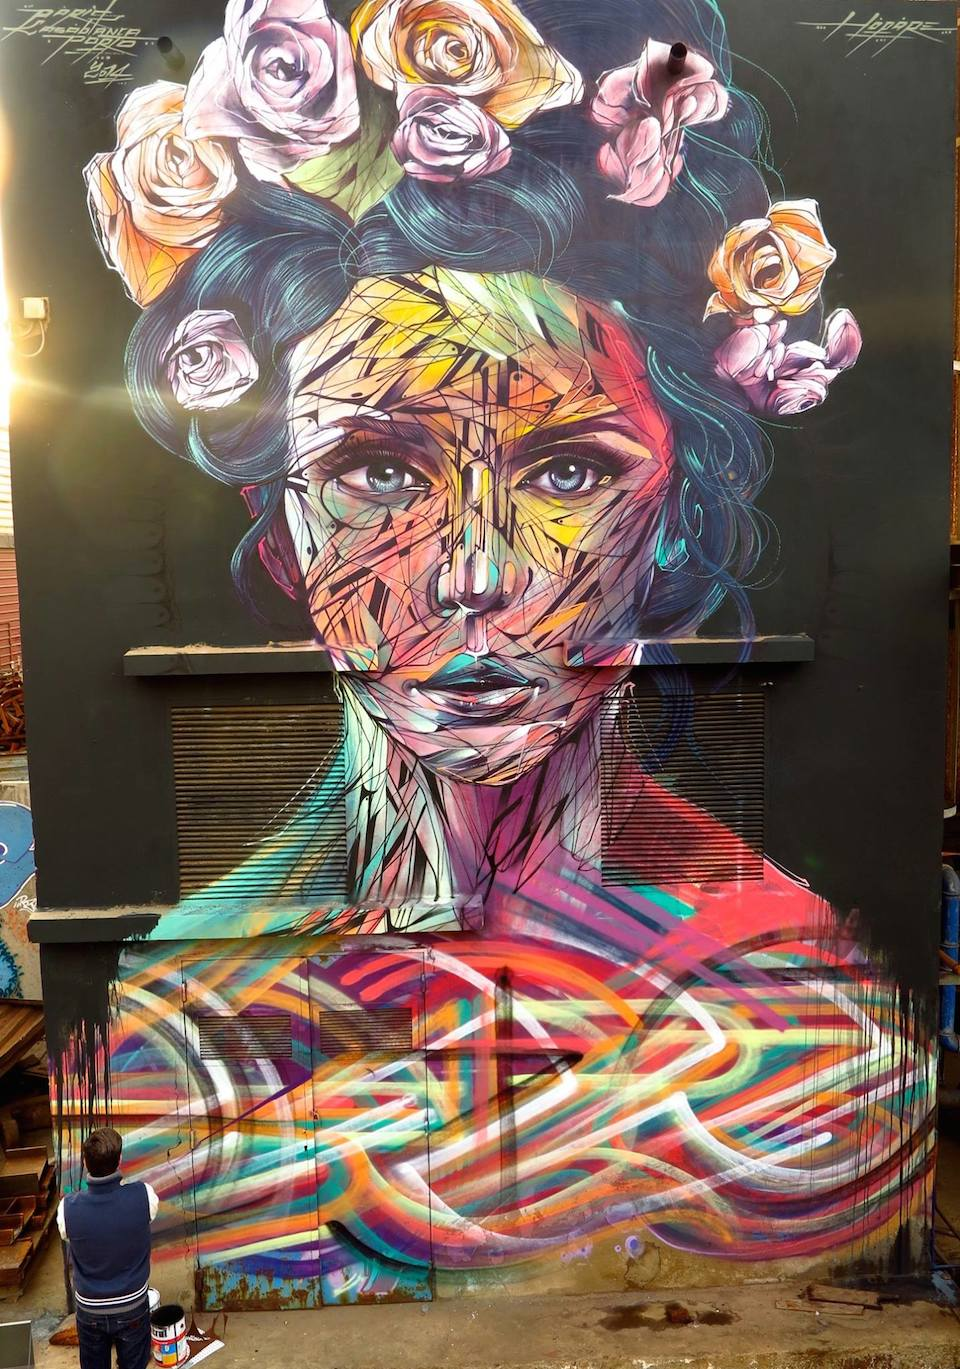 By-Hopare-in-Casablanca-Morocco-1